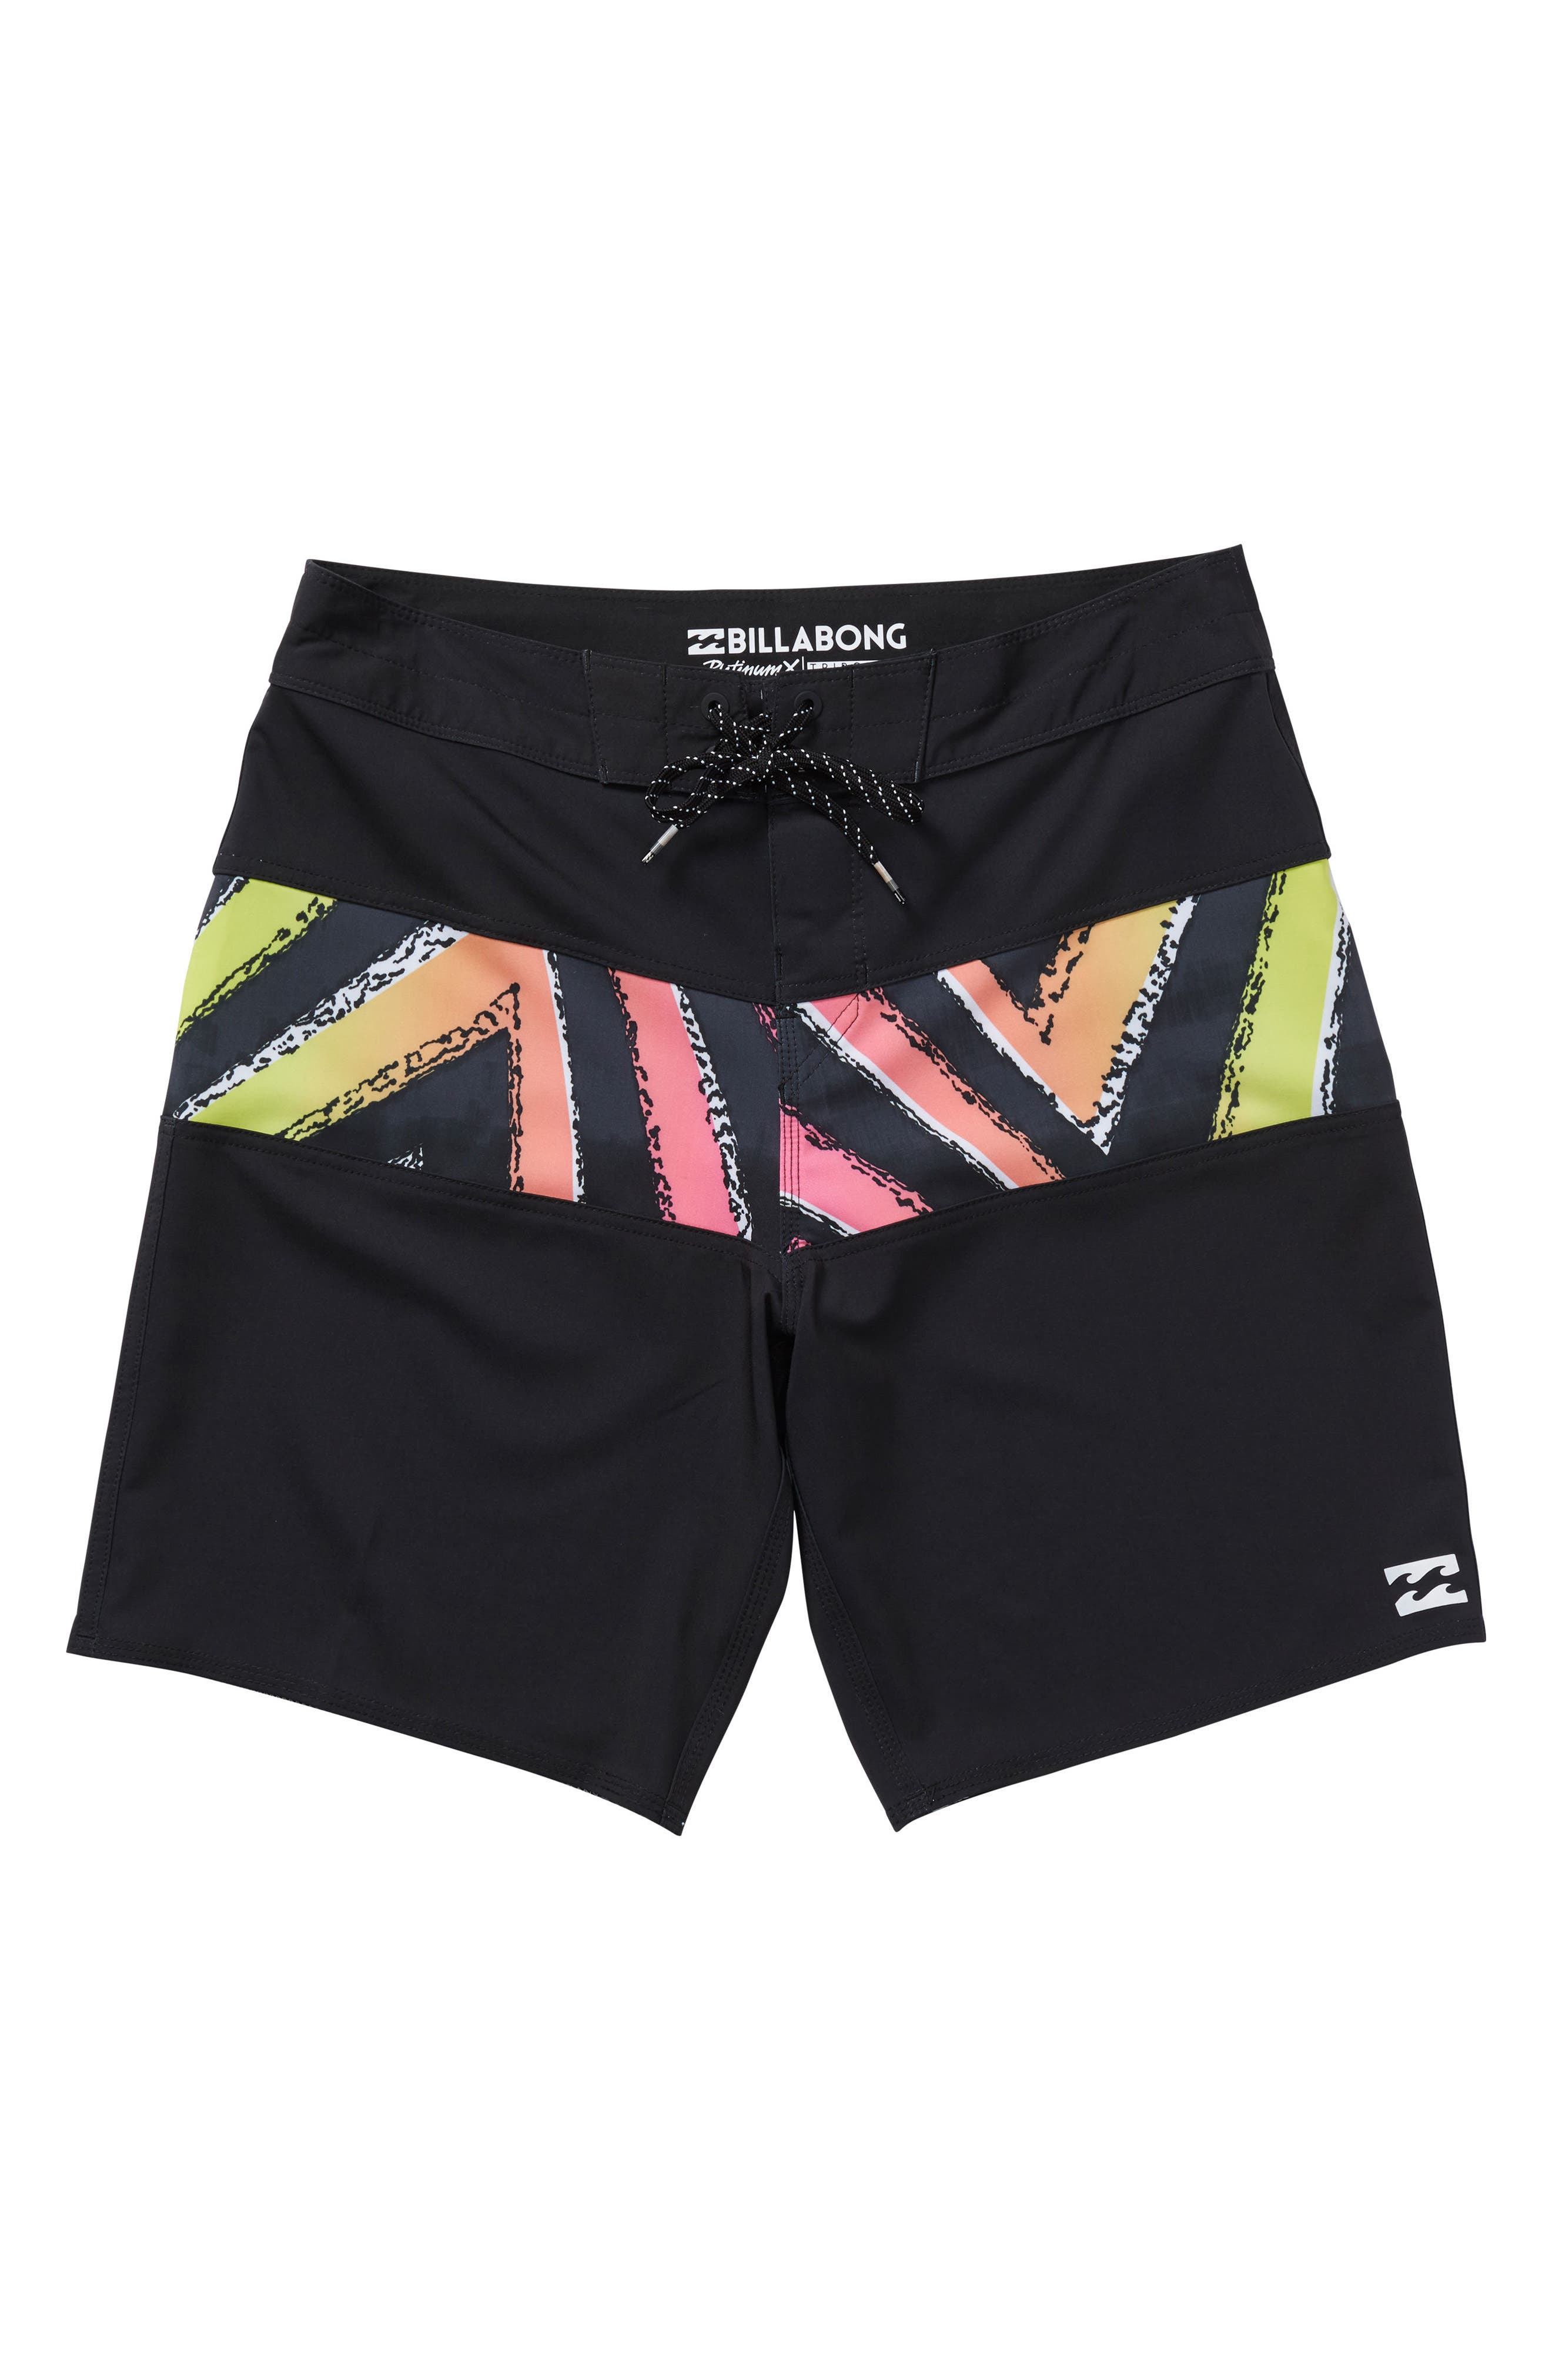 Tribong X Board Shorts,                             Main thumbnail 1, color,                             001